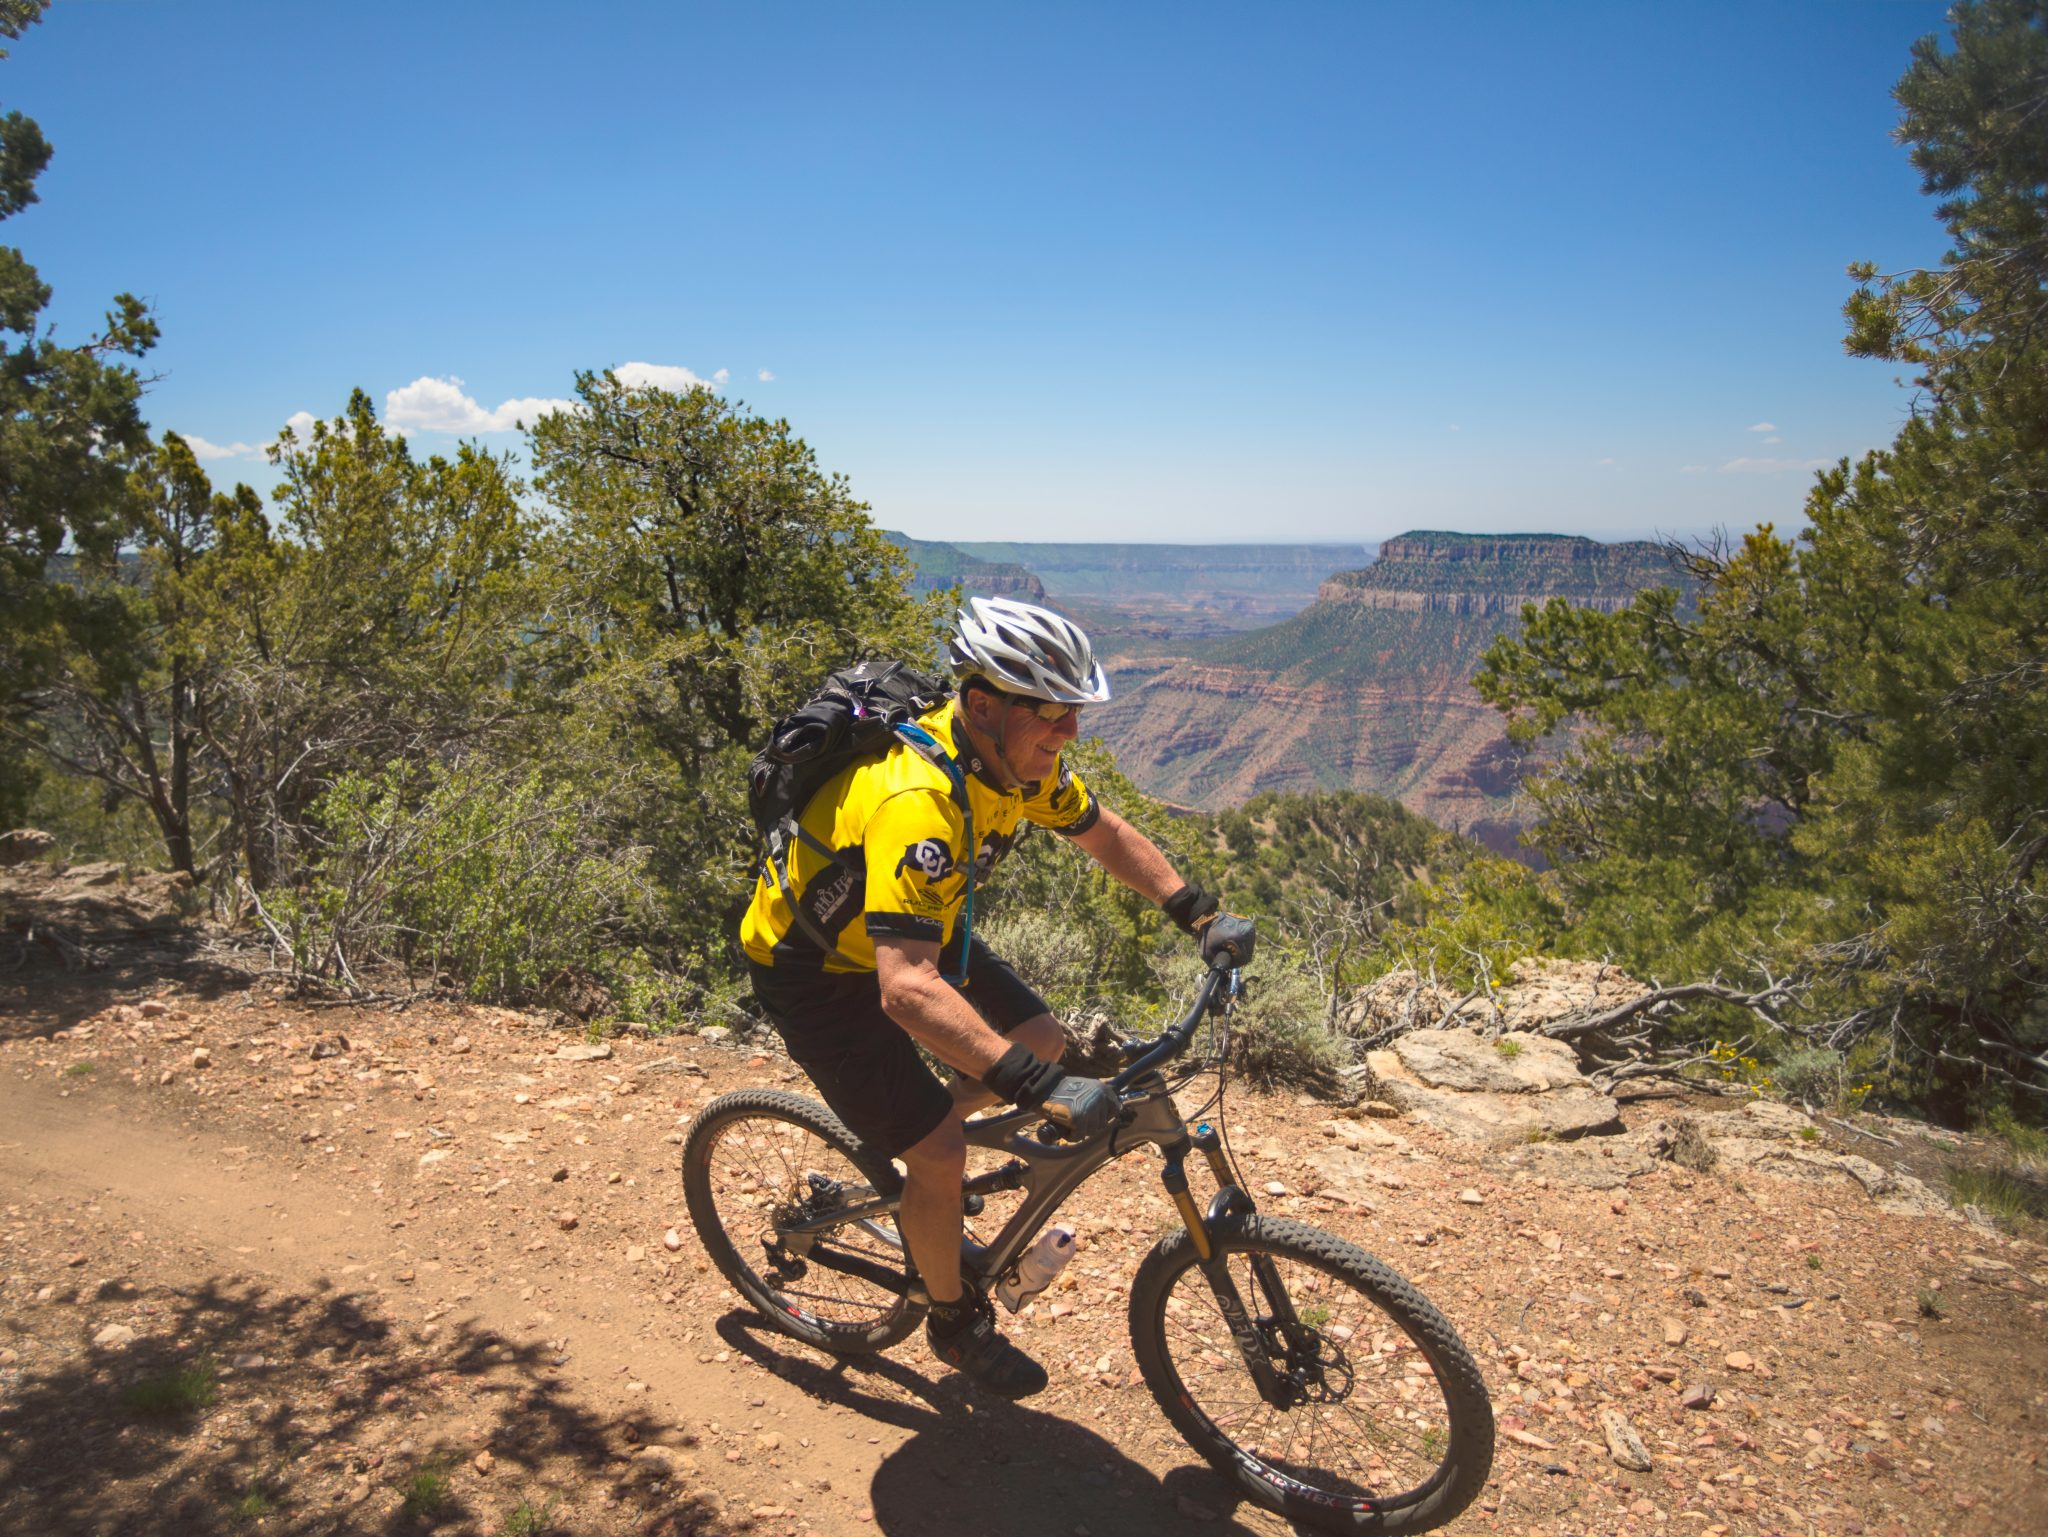 A mountain biker arrives at Fence Point on the Rainbow Rim singletrack on day 3 of the North Rim of the Grand Canyon guided tour